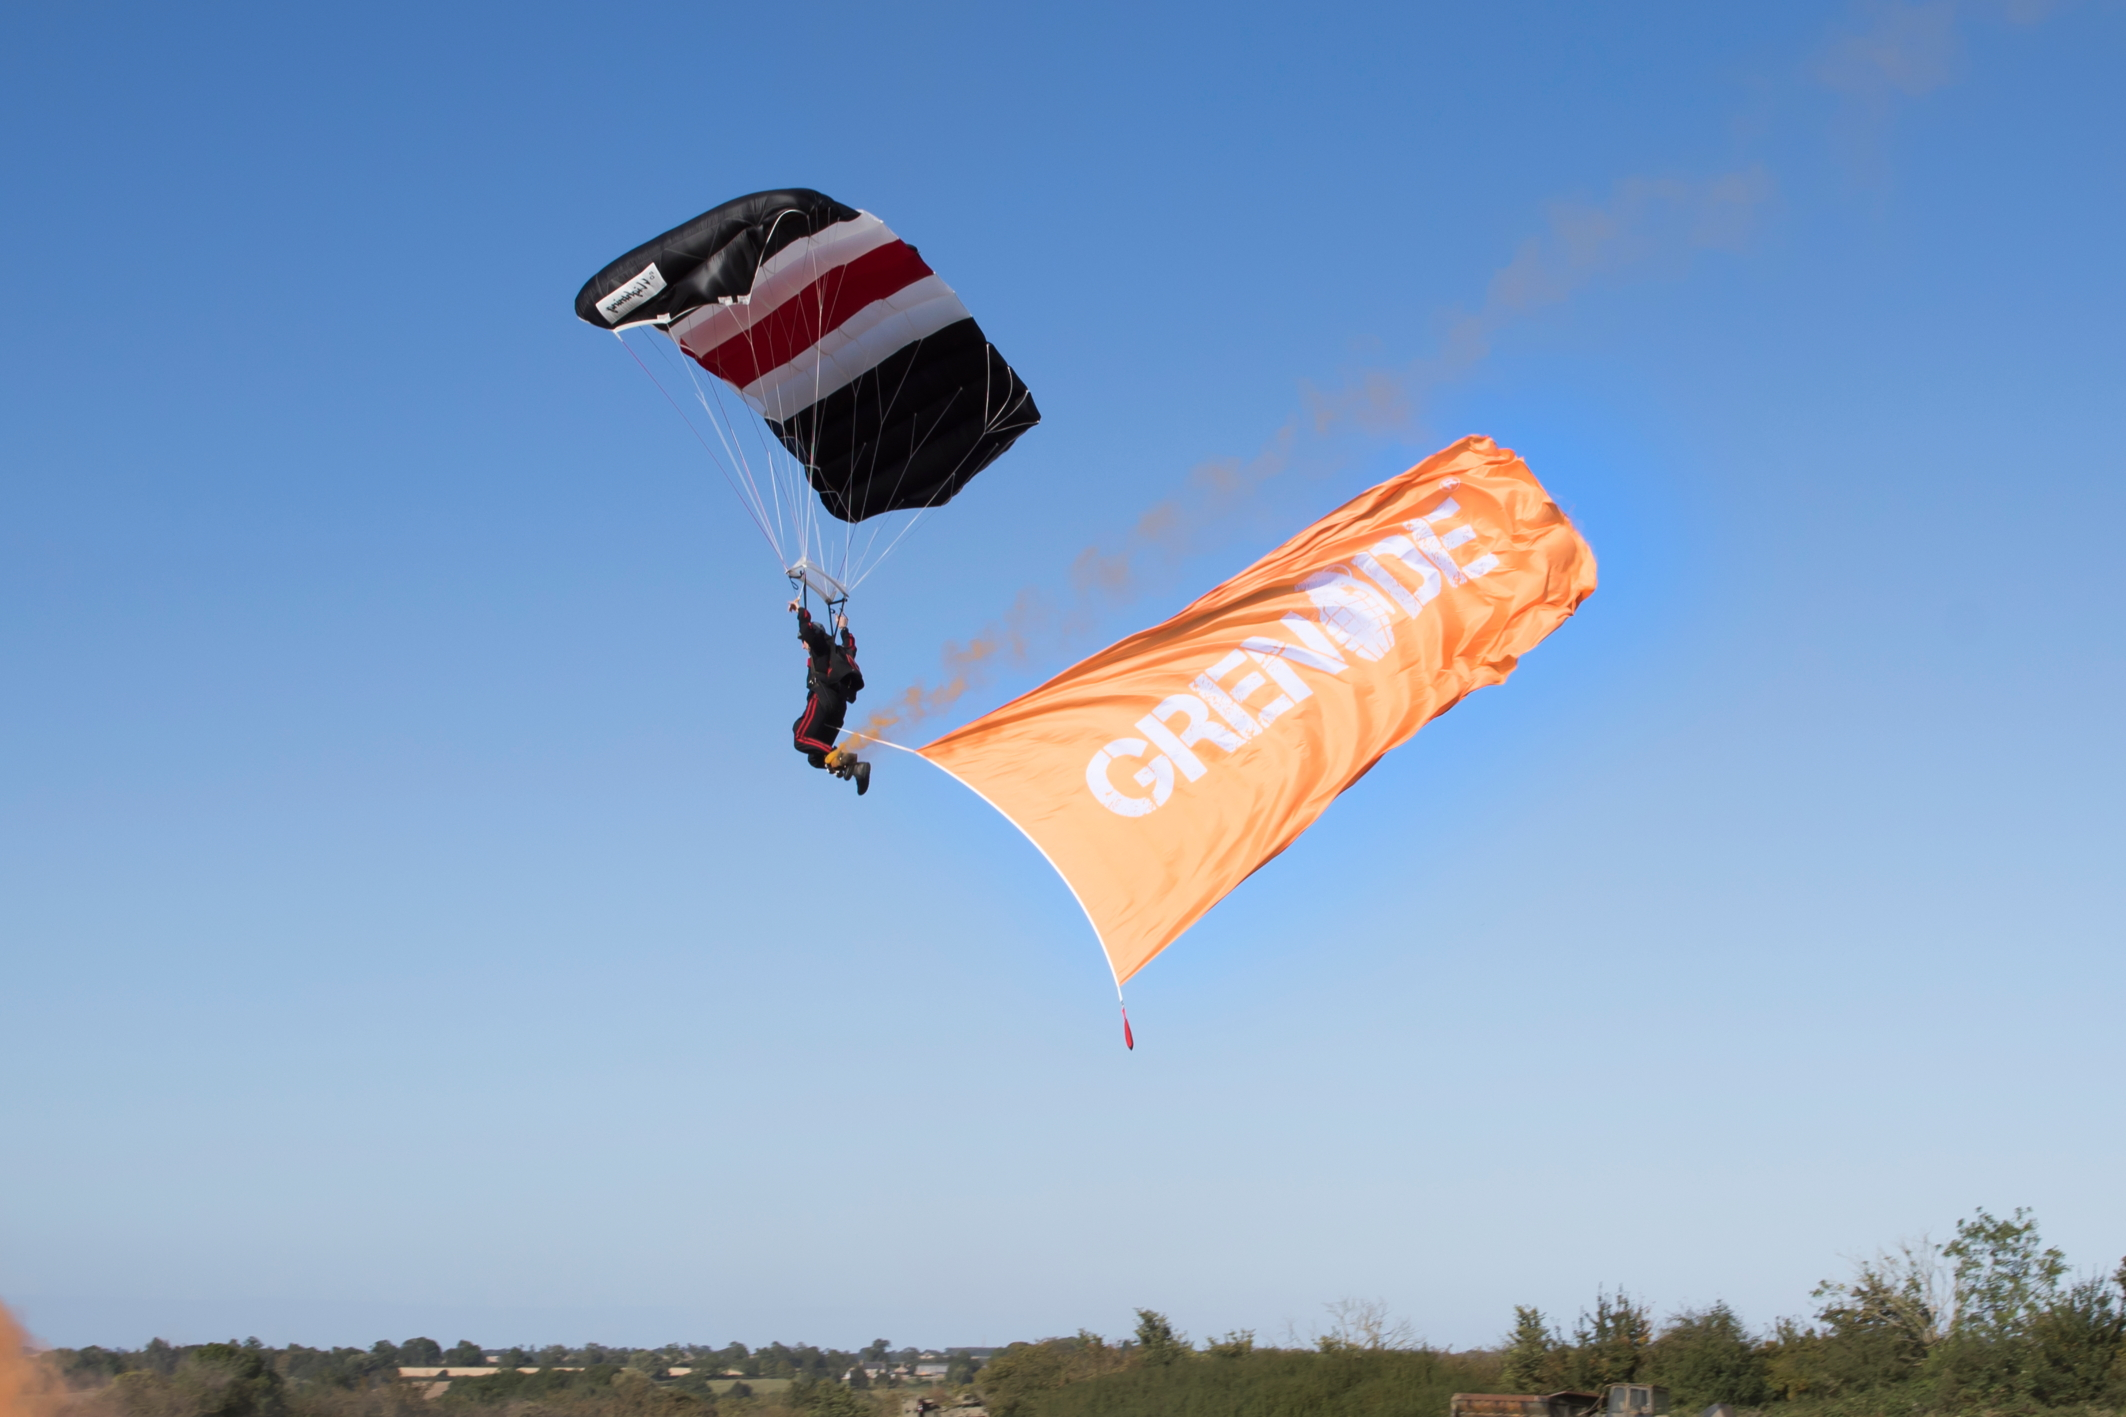 Parachute jumper coming into land, trailing giant orange Grenade-branded flag